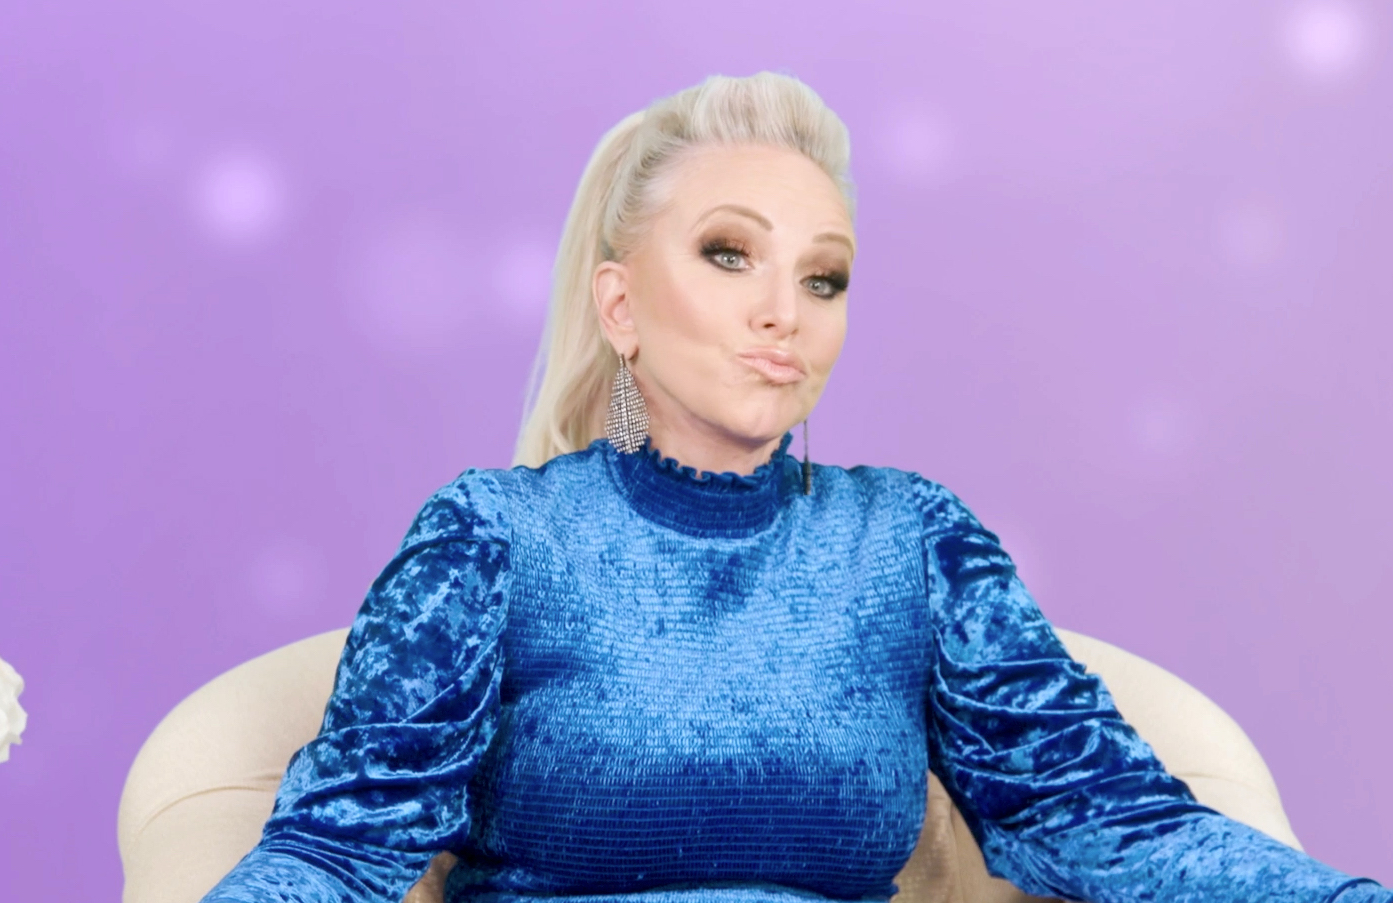 Margaret Josephs, The Real Housewives of New Jersey, Reality TV ratings, RHONJ, Bravo